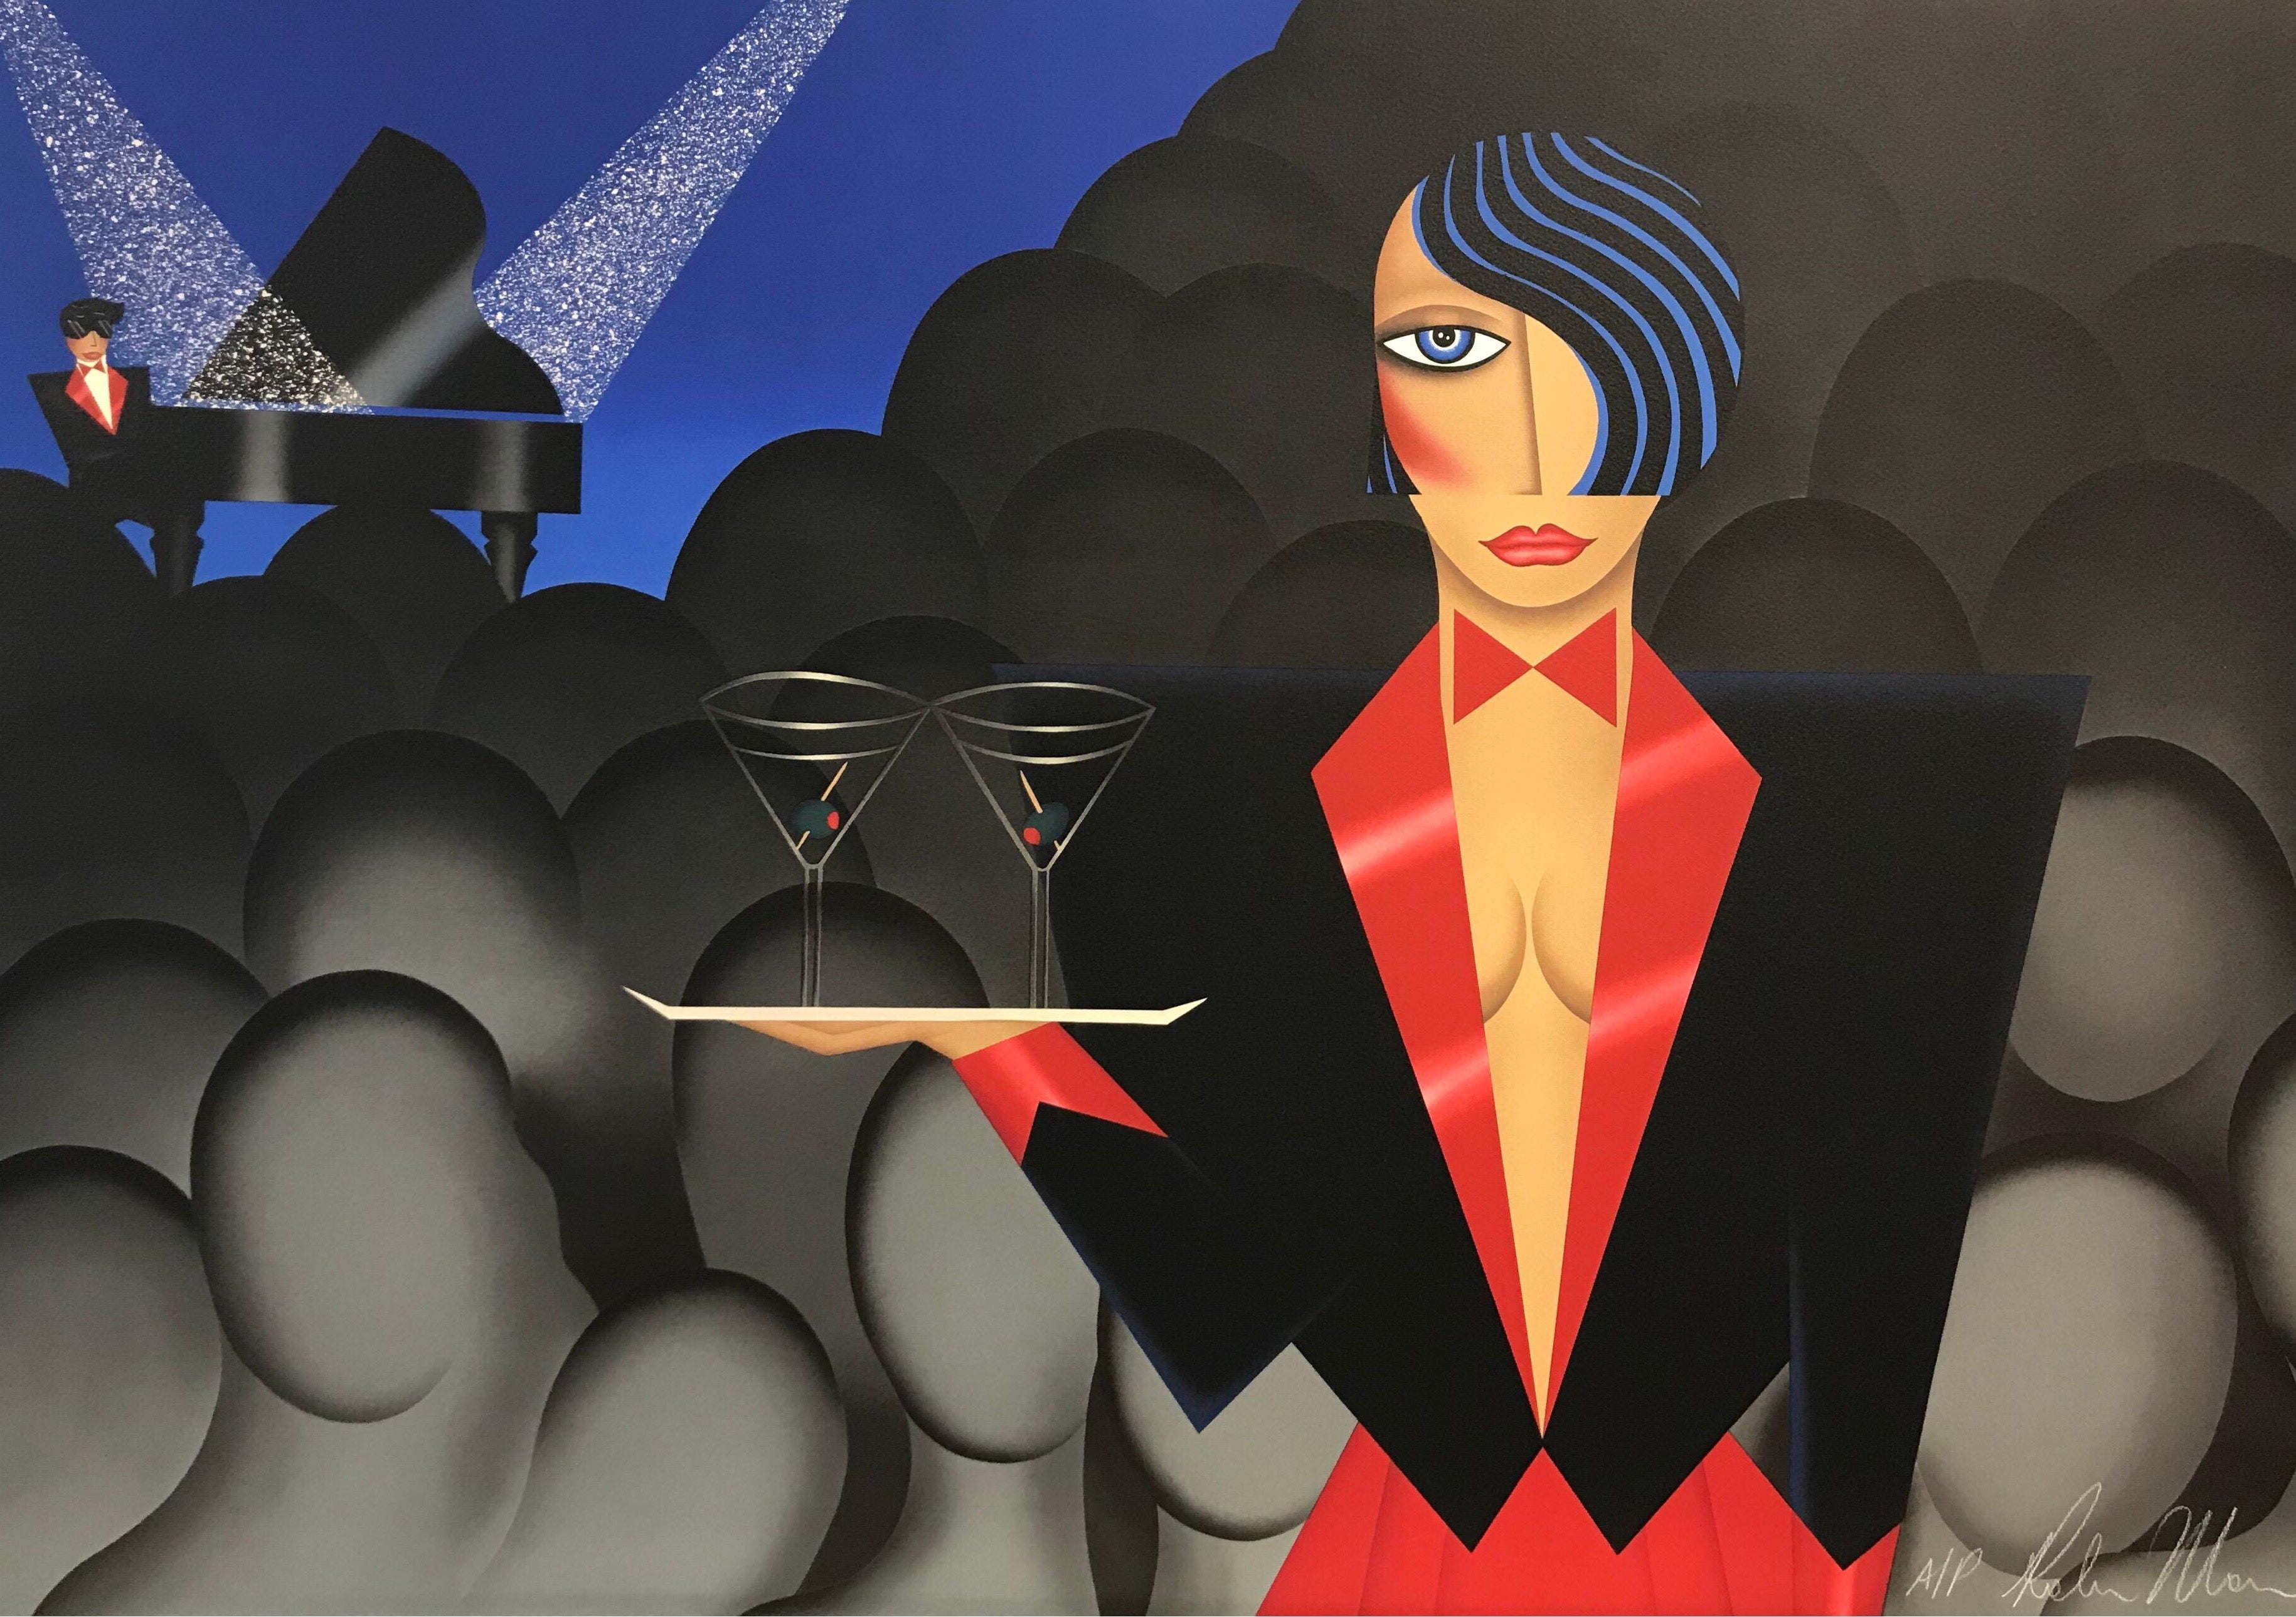 ALONE IN A CROWD Signed Lithograph, Woman Cocktail Waitress, Martini, Art Deco